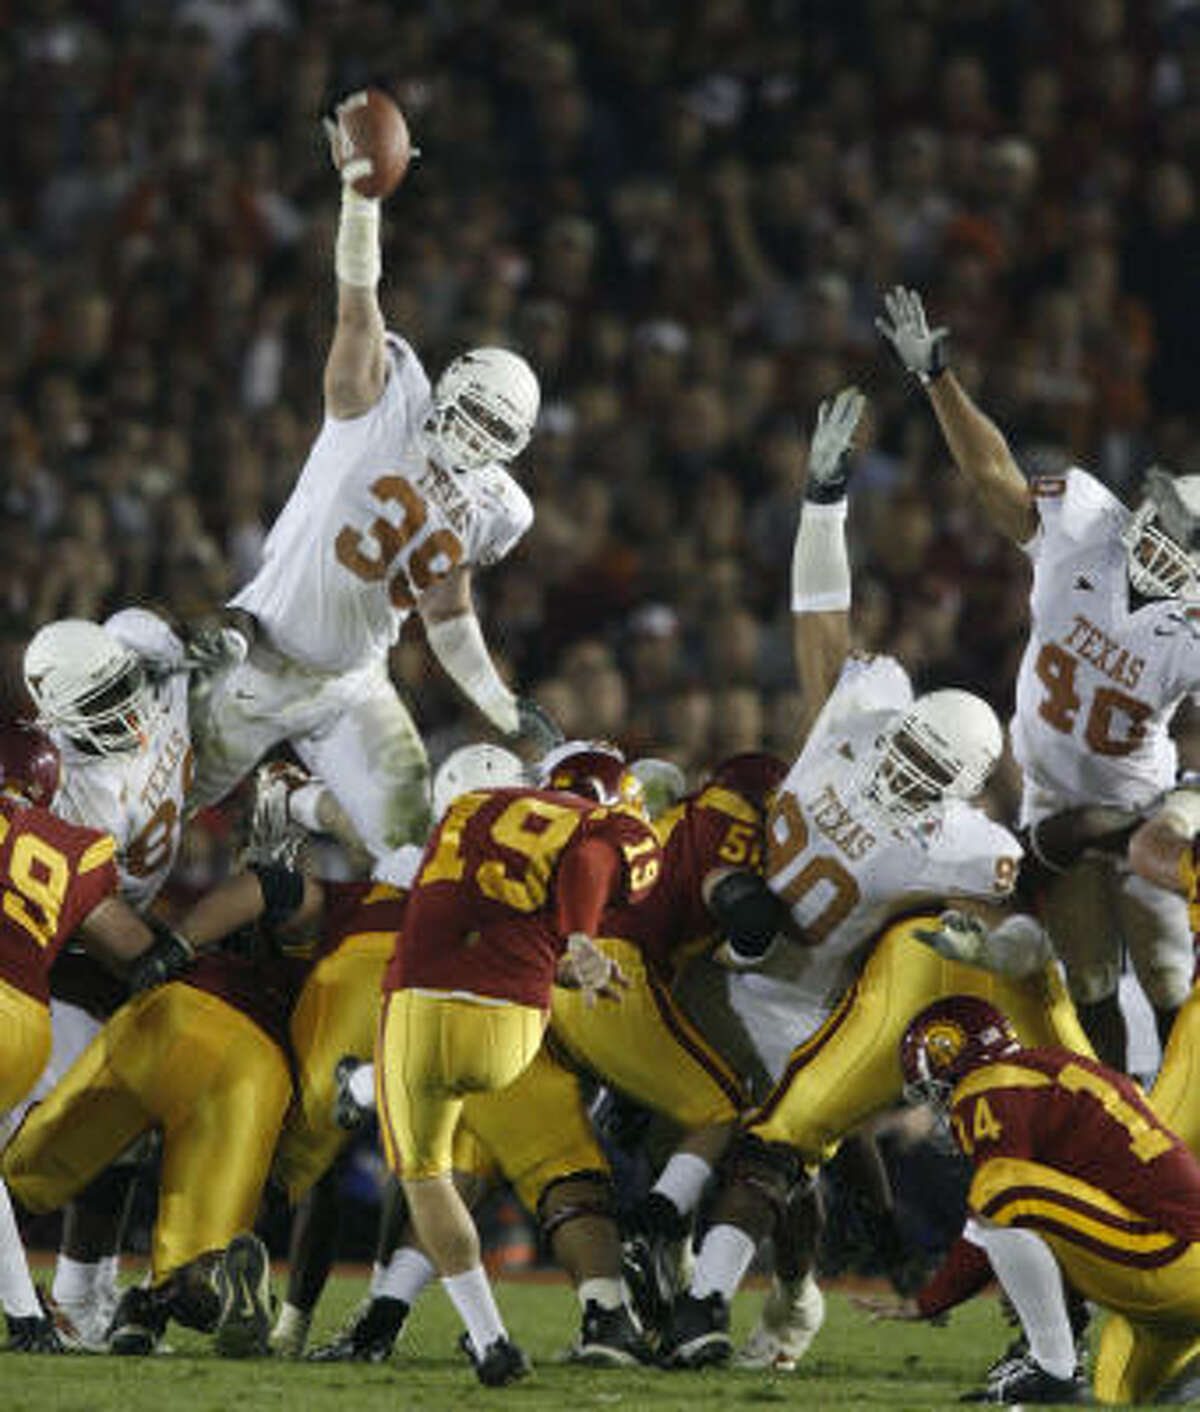 Trojan place kicker Mario Danelo gets the ball by the outstretched arm of Texas special teams player Brian Robison during the second quarter of the Rose Bowl game in Pasadena, Calif., Wednesday.